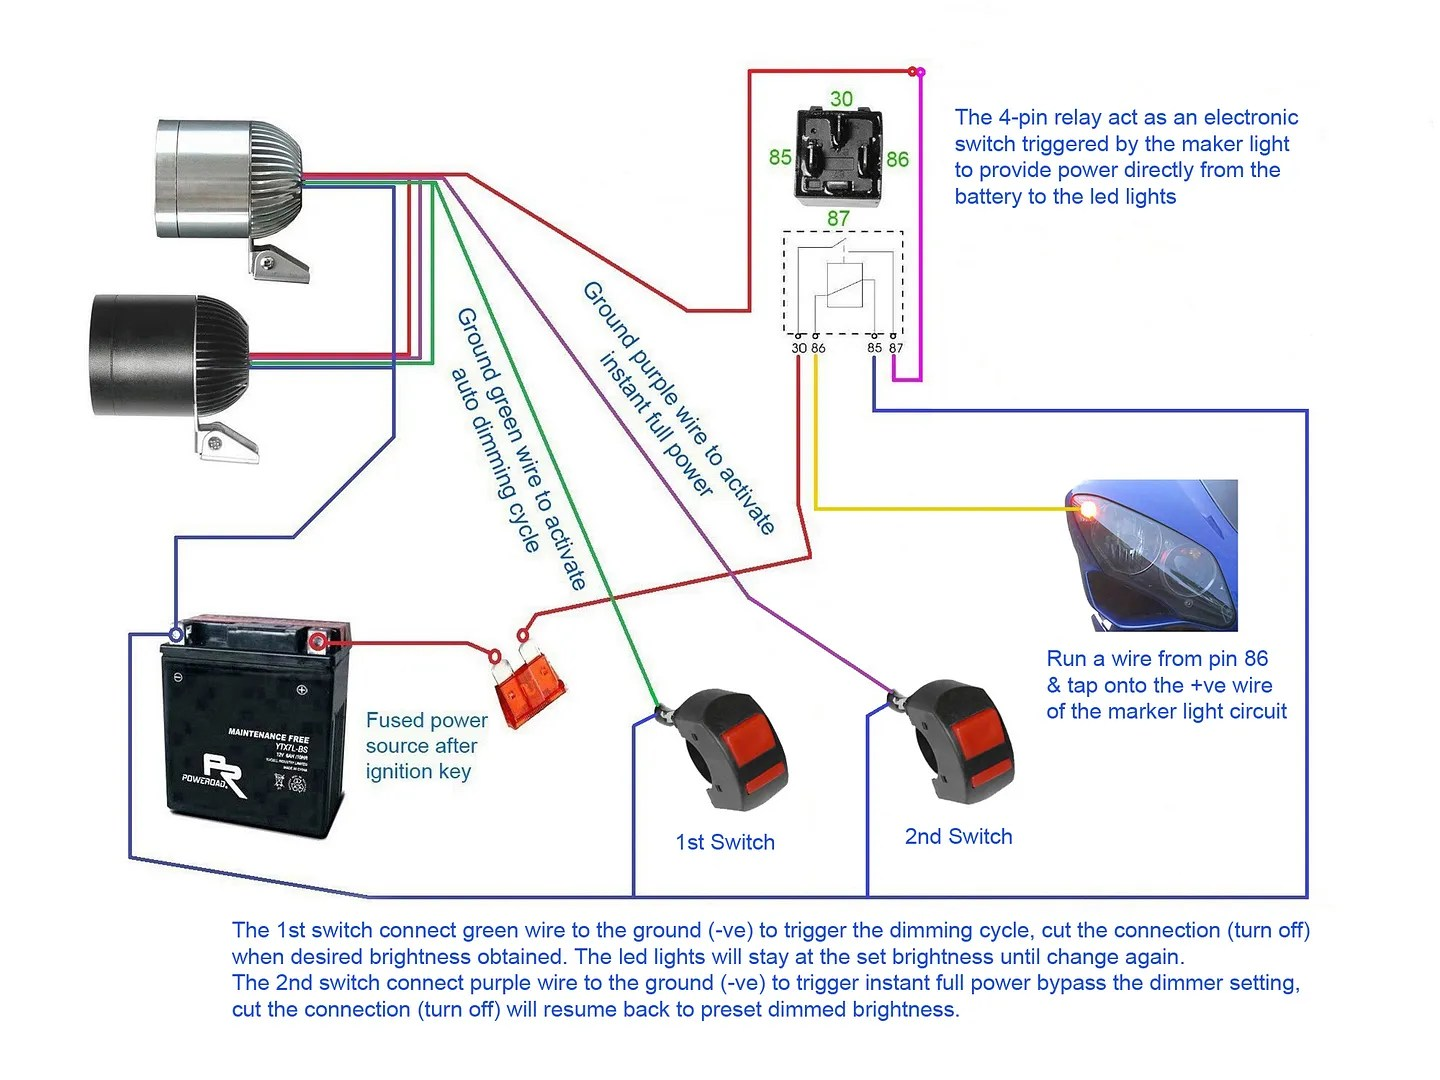 hight resolution of led rocker switch wiring diagram 10 14 tridonicsignage de u20224 pin led diagram wiring diagram